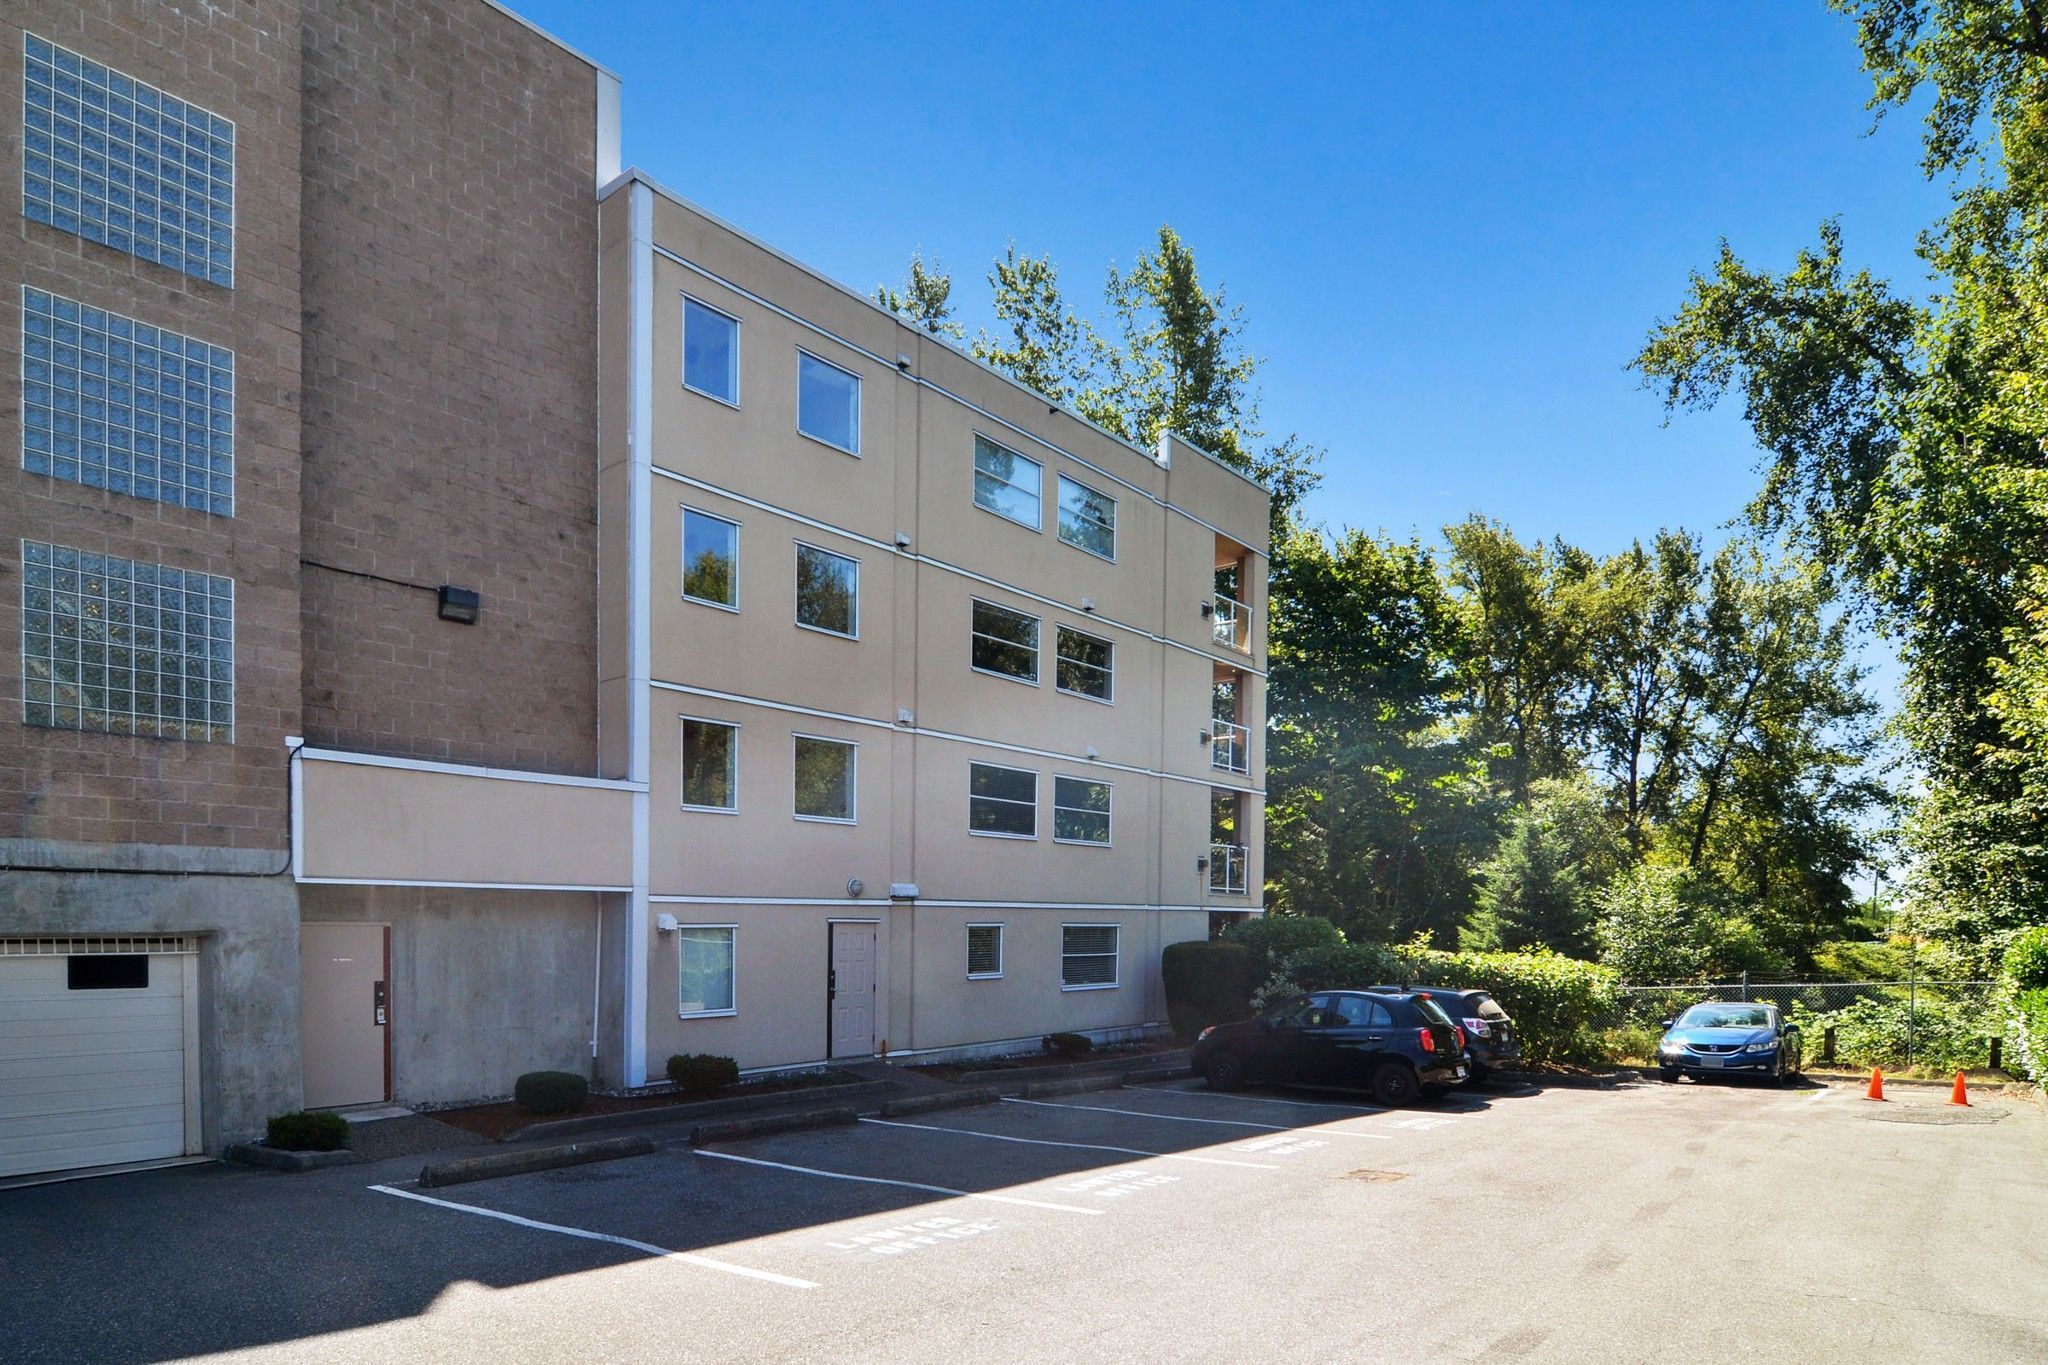 """Main Photo: 302 22722 LOUGHEED Highway in Maple Ridge: East Central Condo for sale in """"MARK'S PLACE"""" : MLS®# R2602812"""